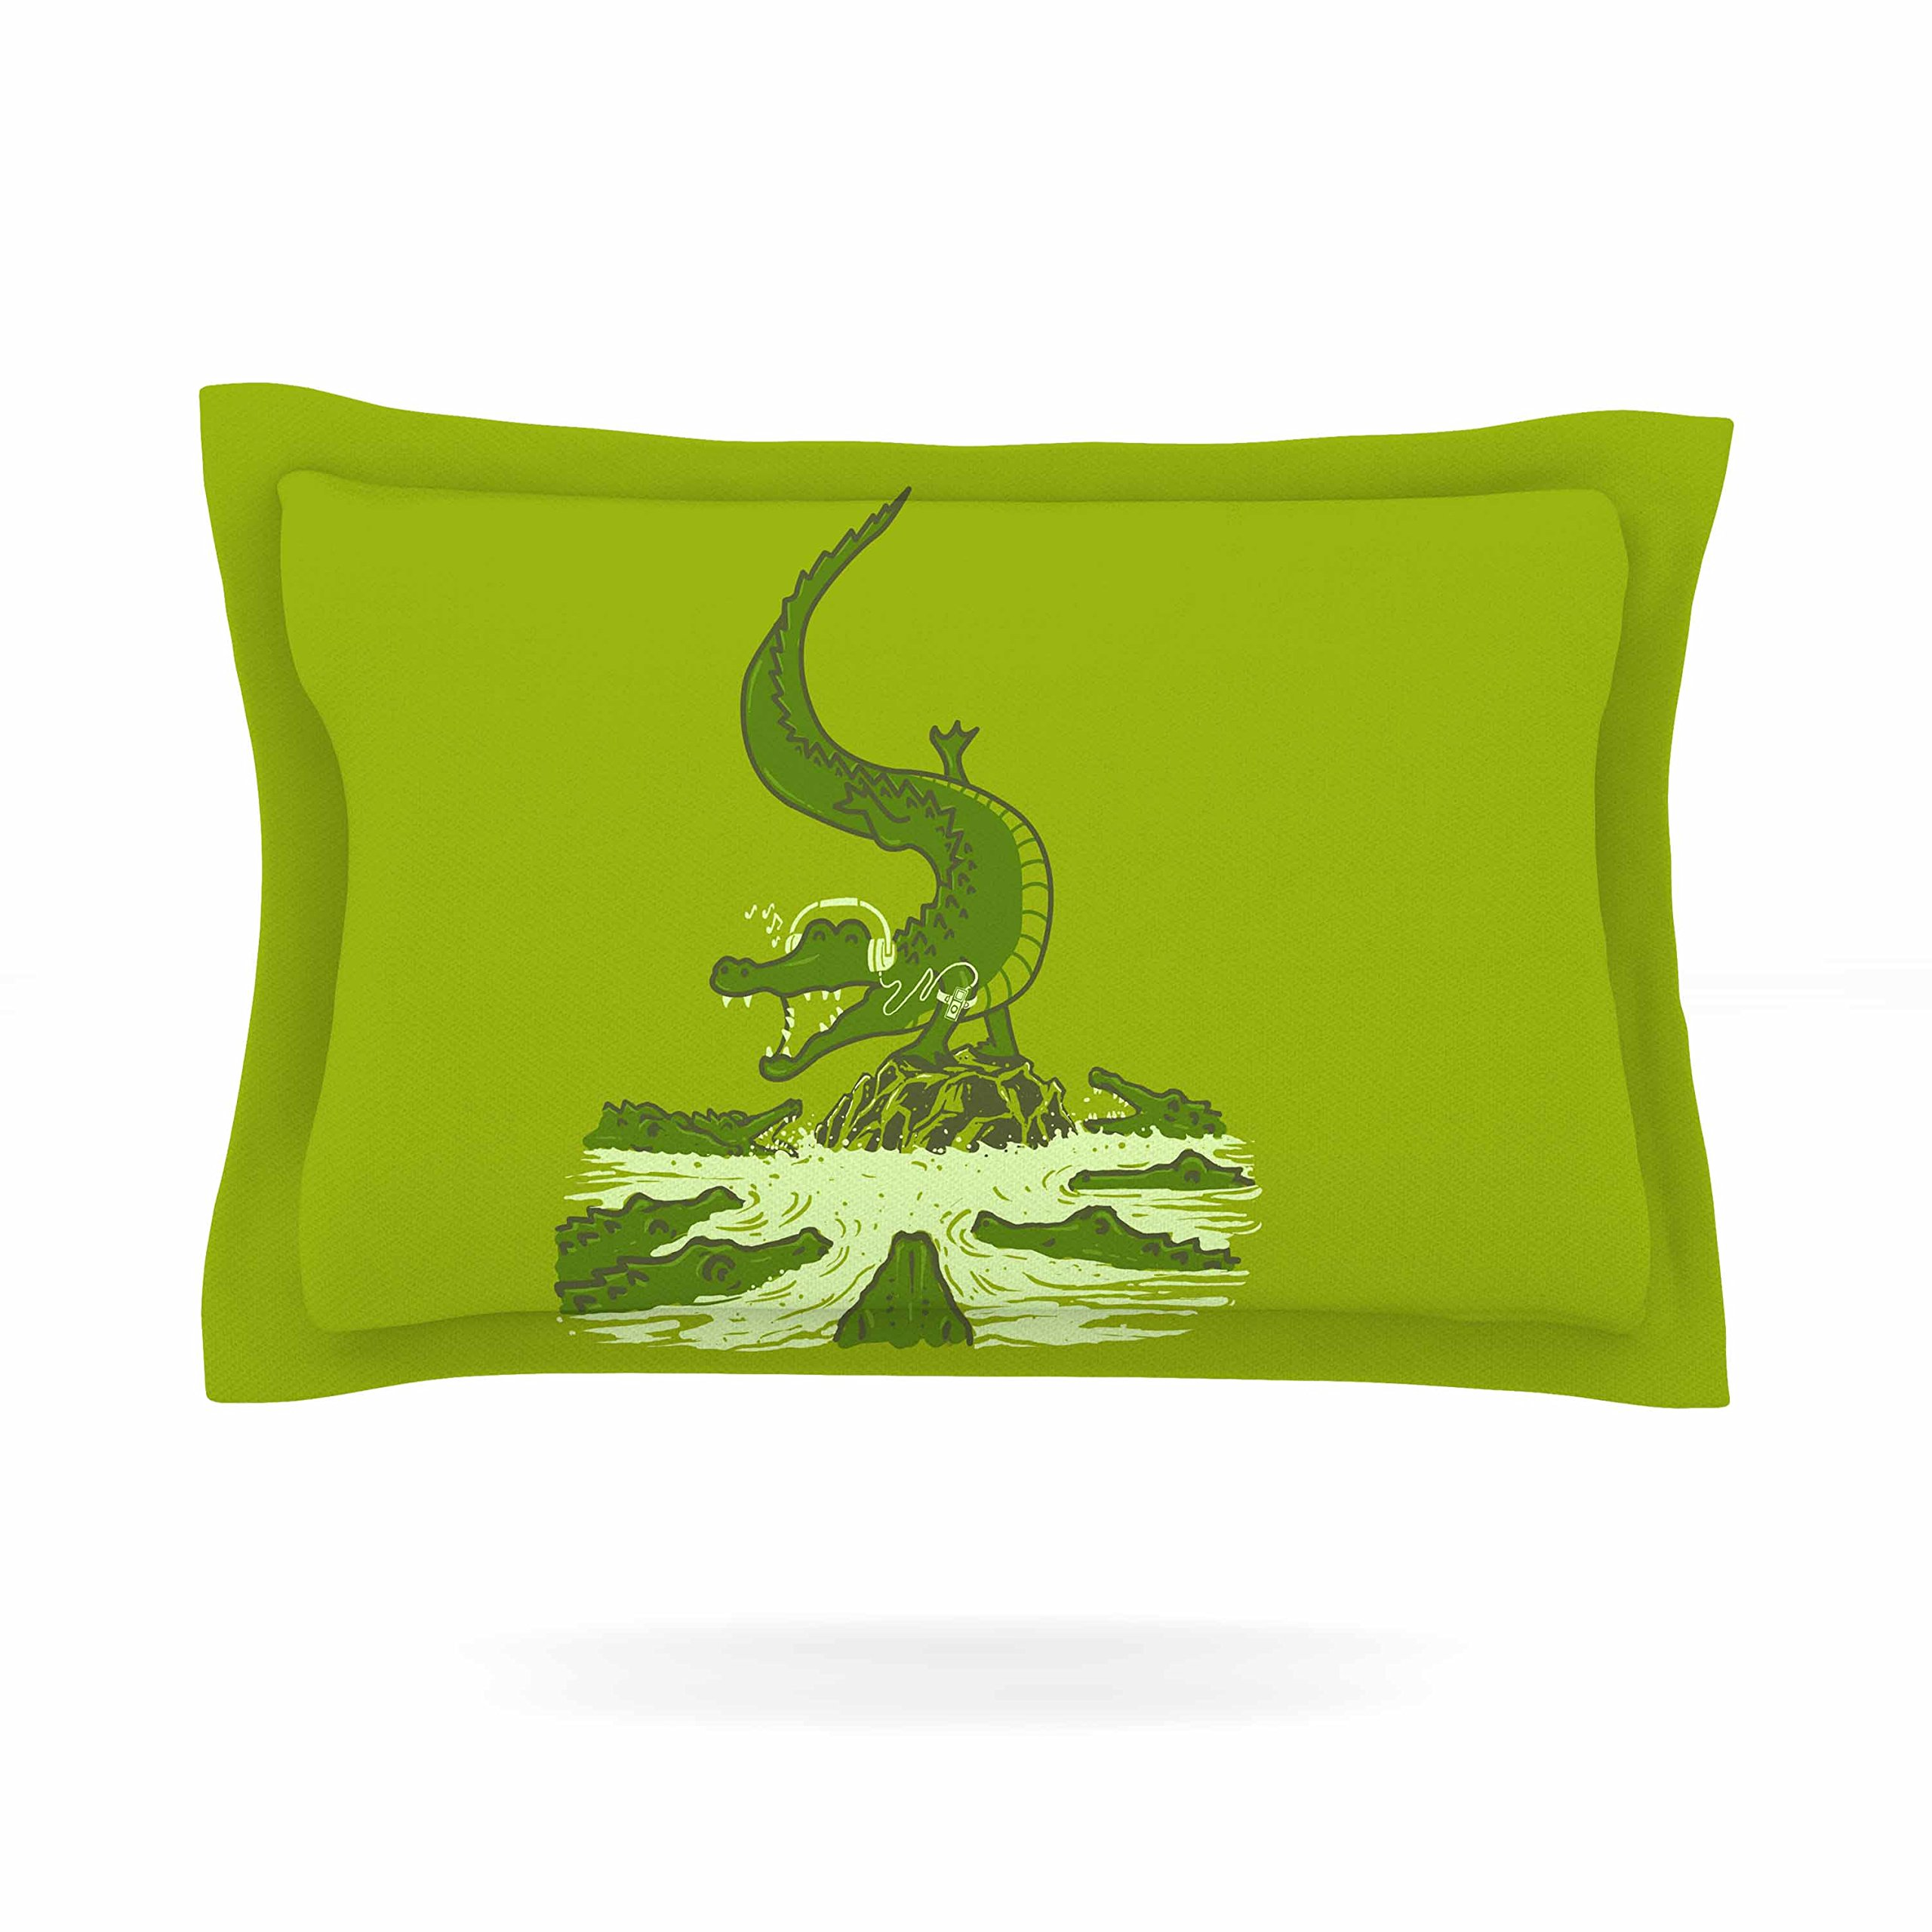 KESS InHouse BarmalisiRTB ''Breakdance Crocodile'' Green Beige Pillow Sham, 30'' x 20''